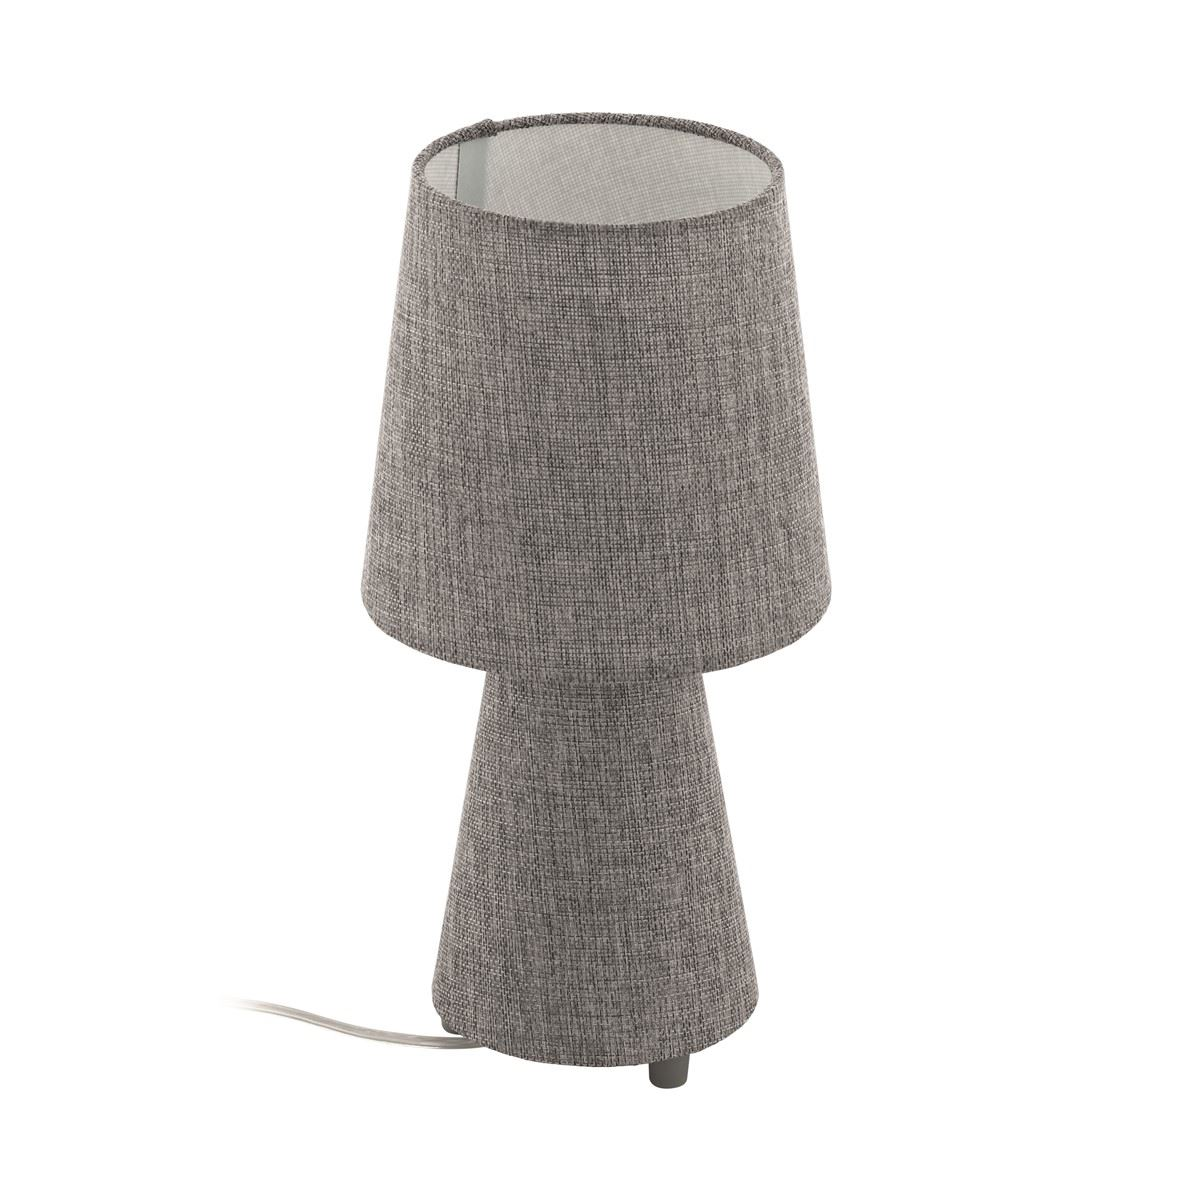 Grey Fabric Table Lamp With Shade For Bedside Table